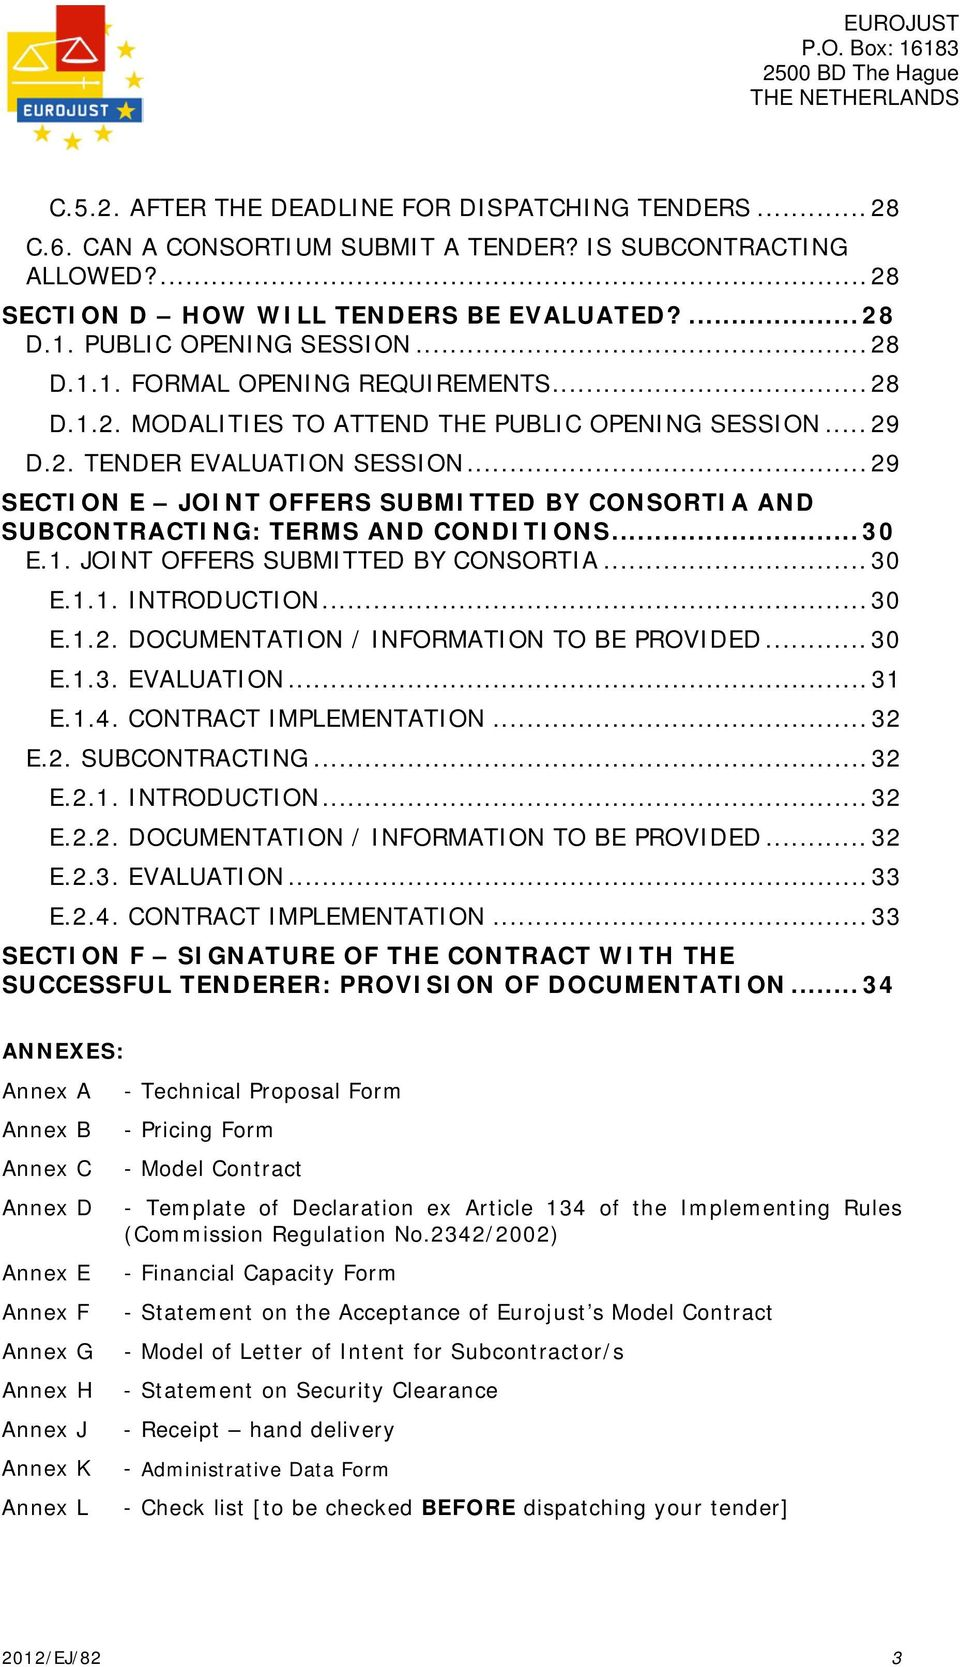 .. 29 SECTION E JOINT OFFERS SUBMITTED BY CONSORTIA AND SUBCONTRACTING: TERMS AND CONDITIONS... 30 E.1. JOINT OFFERS SUBMITTED BY CONSORTIA... 30 E.1.1. INTRODUCTION... 30 E.1.2. DOCUMENTATION / INFORMATION TO BE PROVIDED.